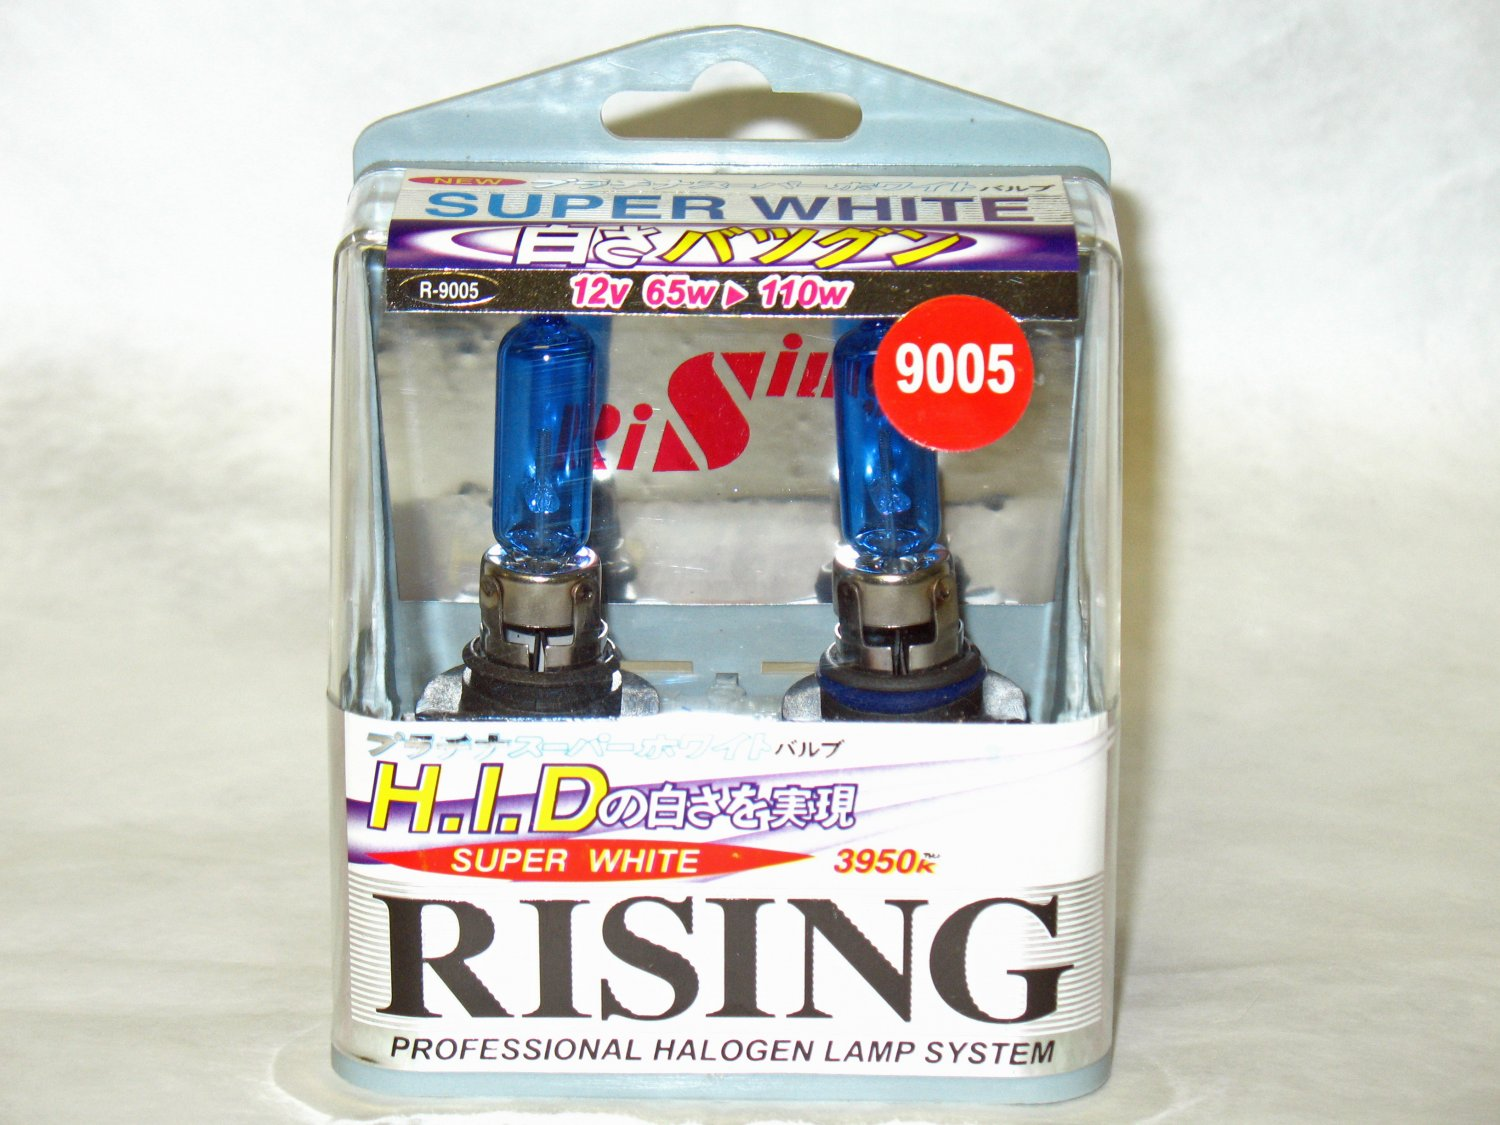 9005 Rising Super White 3950K 65W Halogen Replacement Light Bulb Set of 2 from Japan